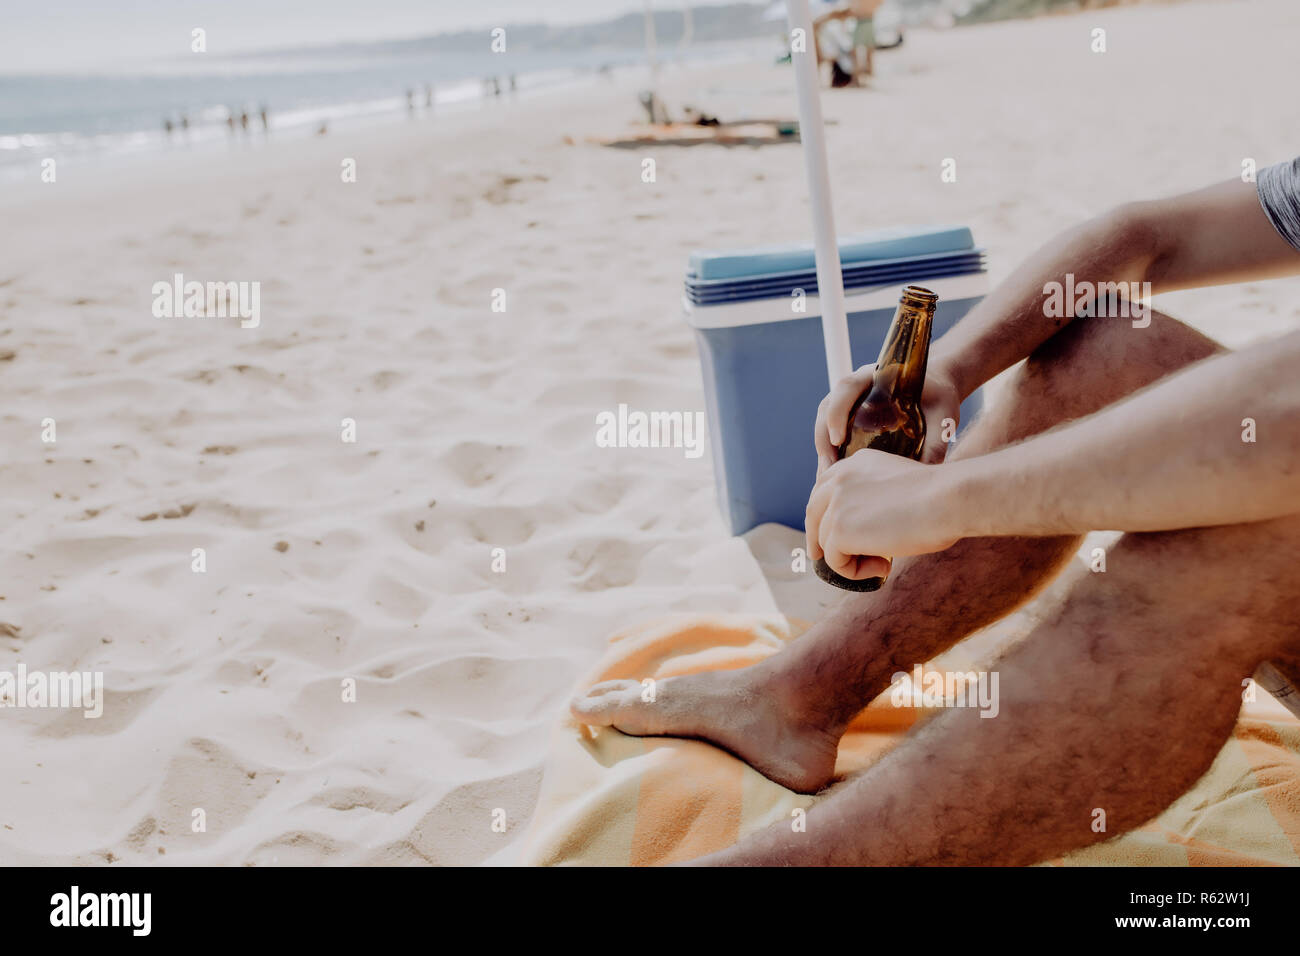 Cropped photo from back of man casual summer outfit drink beer bottle for cooler during party at seaside - Stock Image